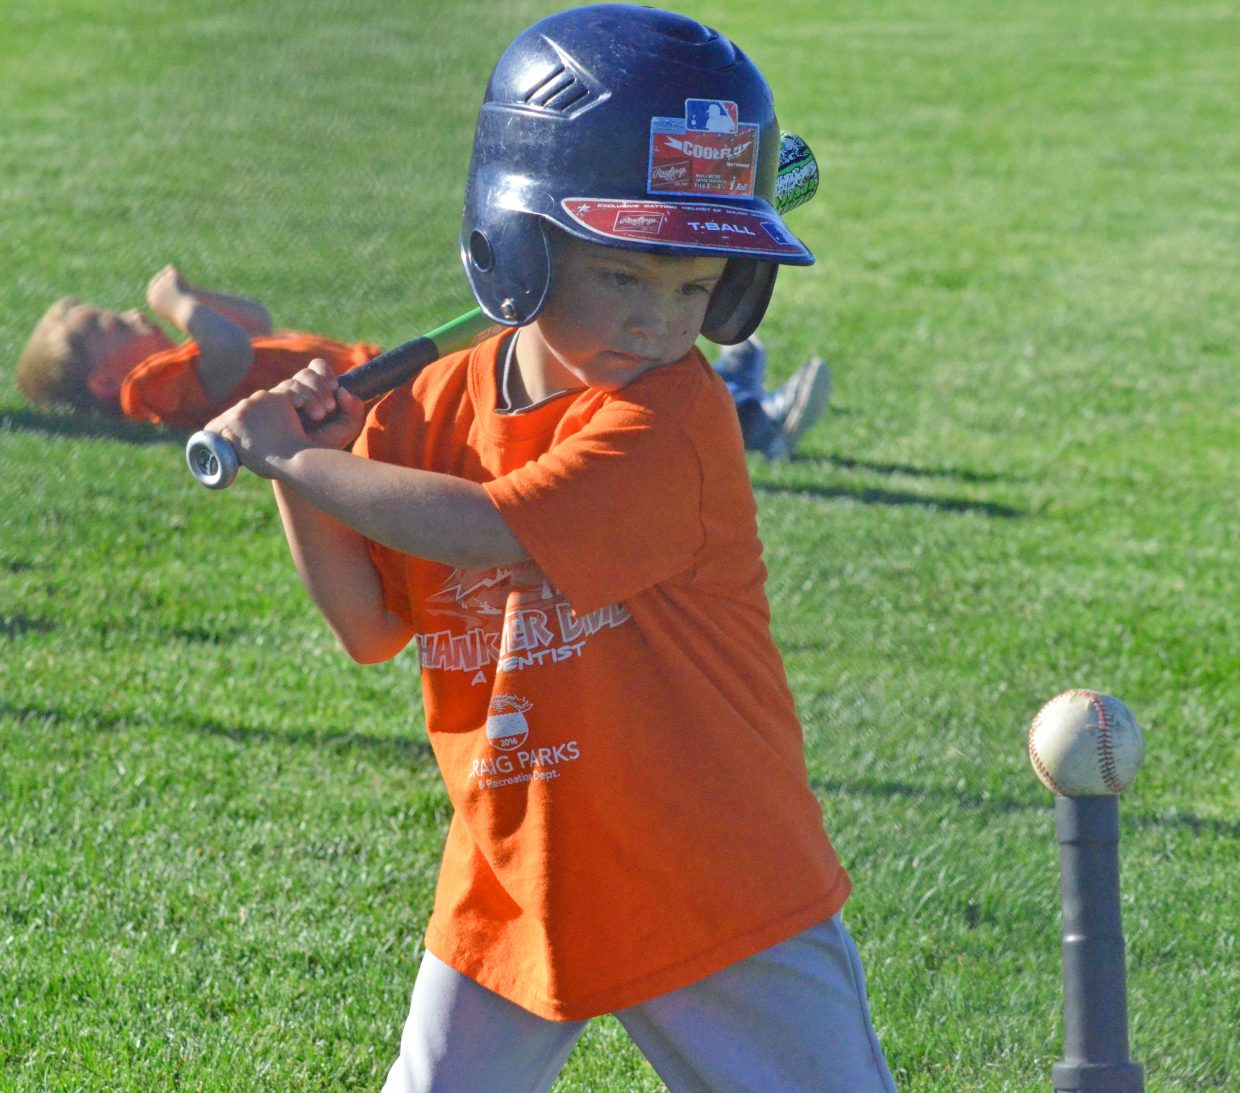 Chance Hixson eyes the ball and gets ready to swing during a Thursday Craig Parks & Recreation t-ball game at Woodbury Sports Complex. Hixson plays for the team A Kidz Dentist.